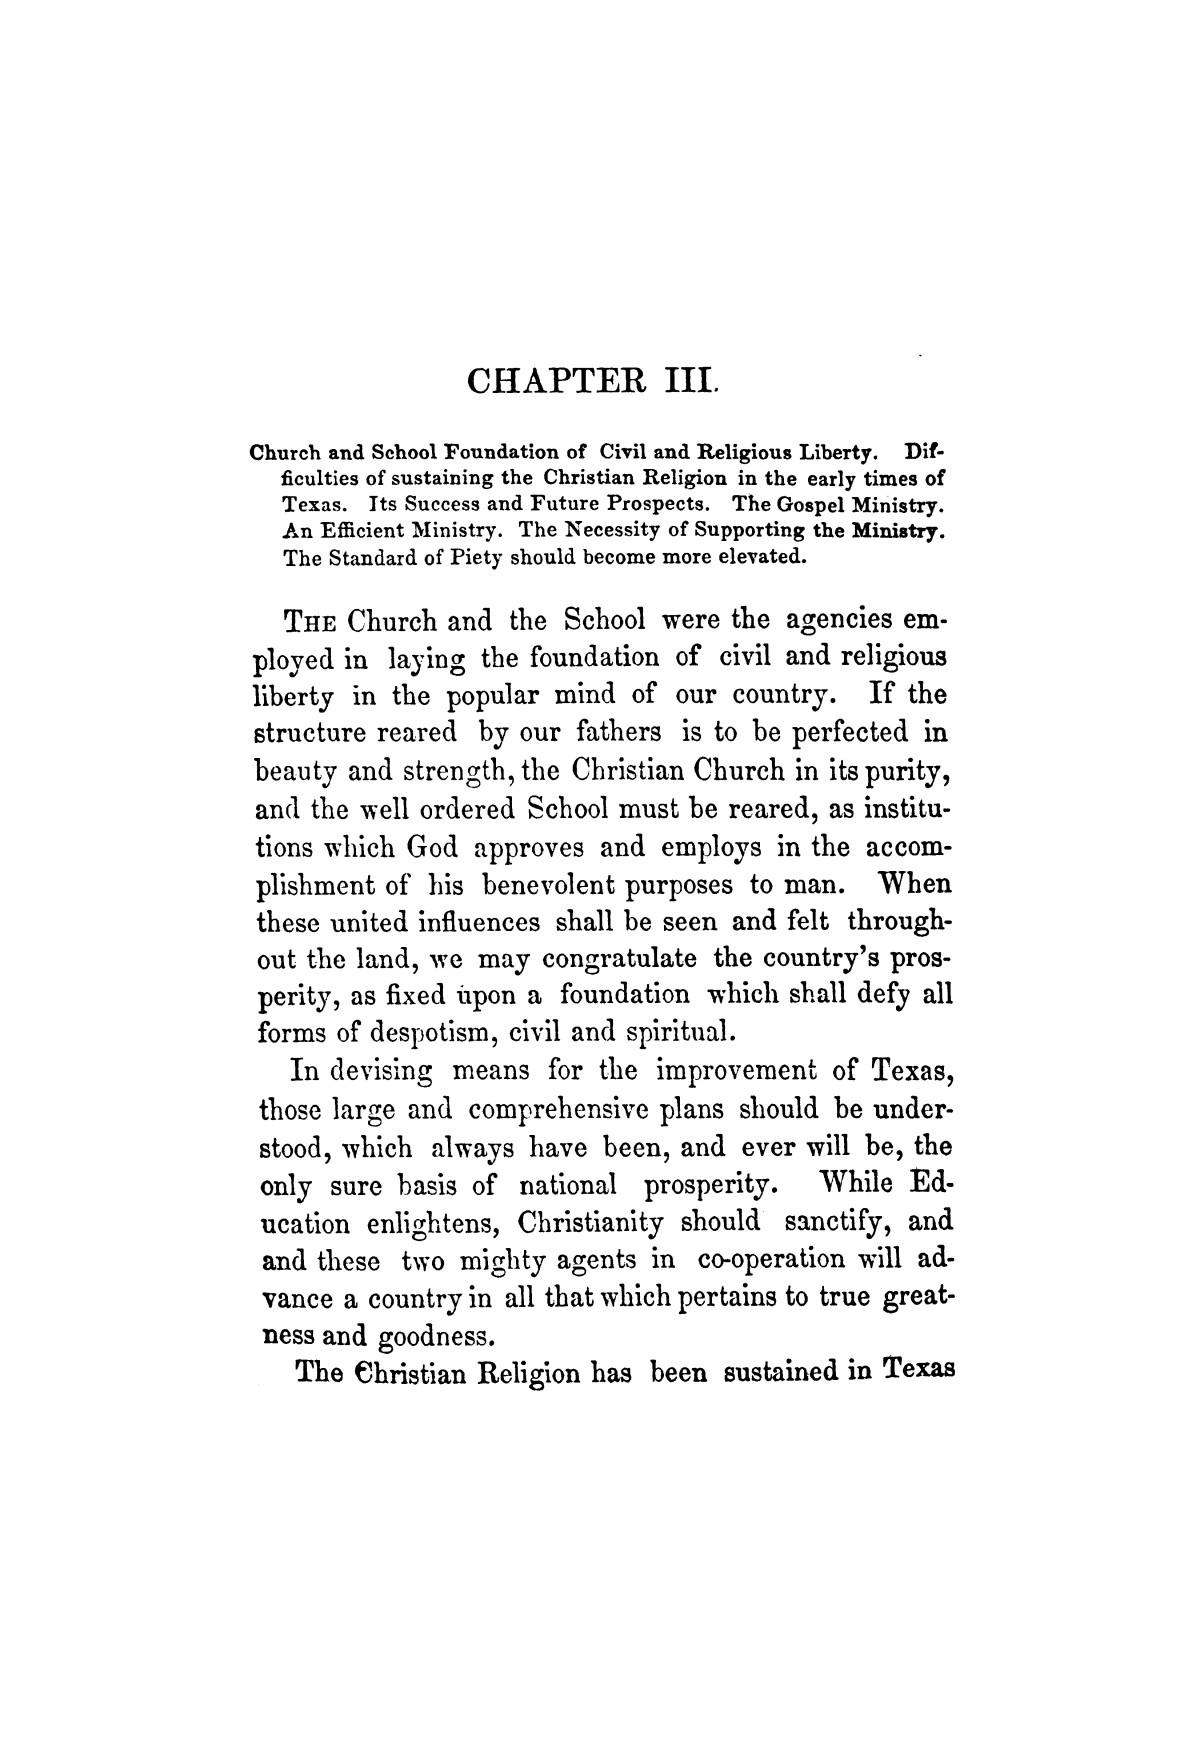 Texas in 1850. By Melinda Rankin.                                                                                                      [Sequence #]: 28 of 196